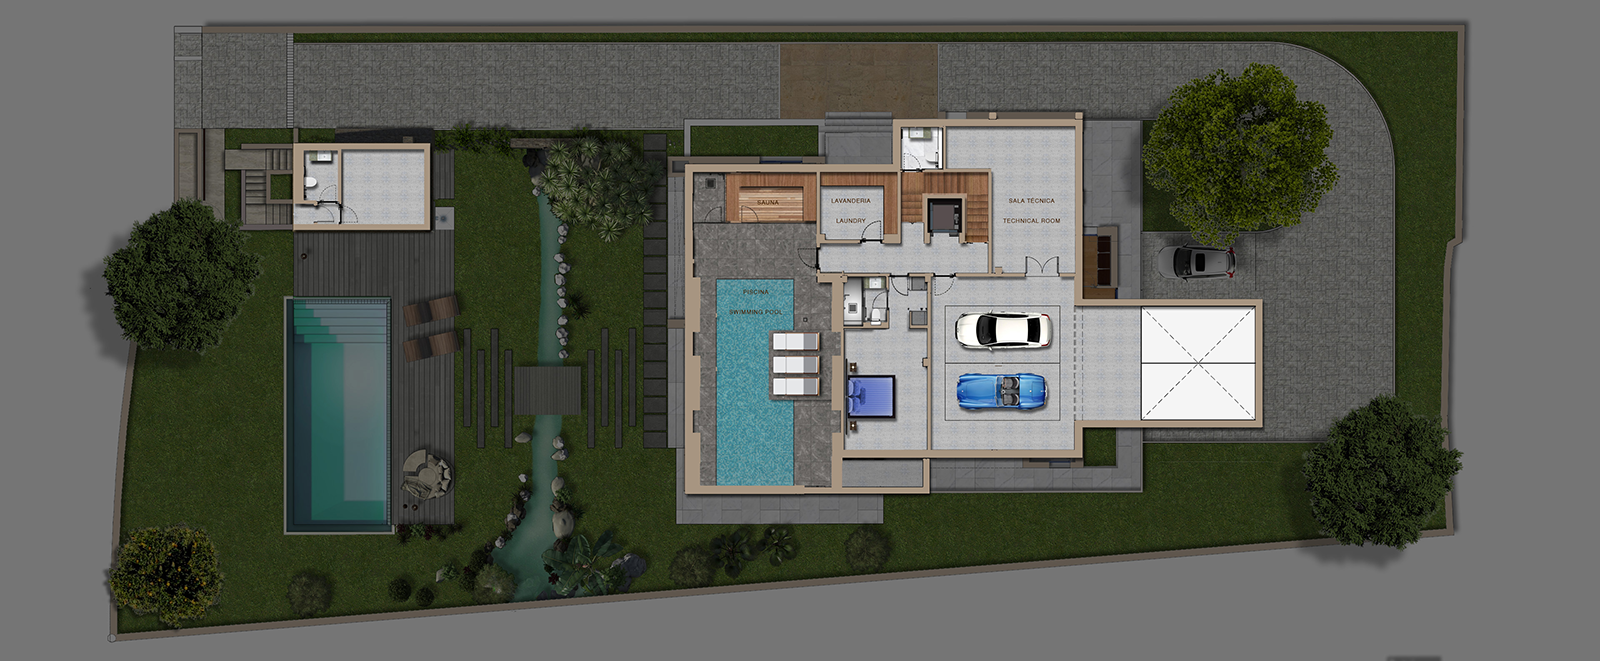 Basement / Pool